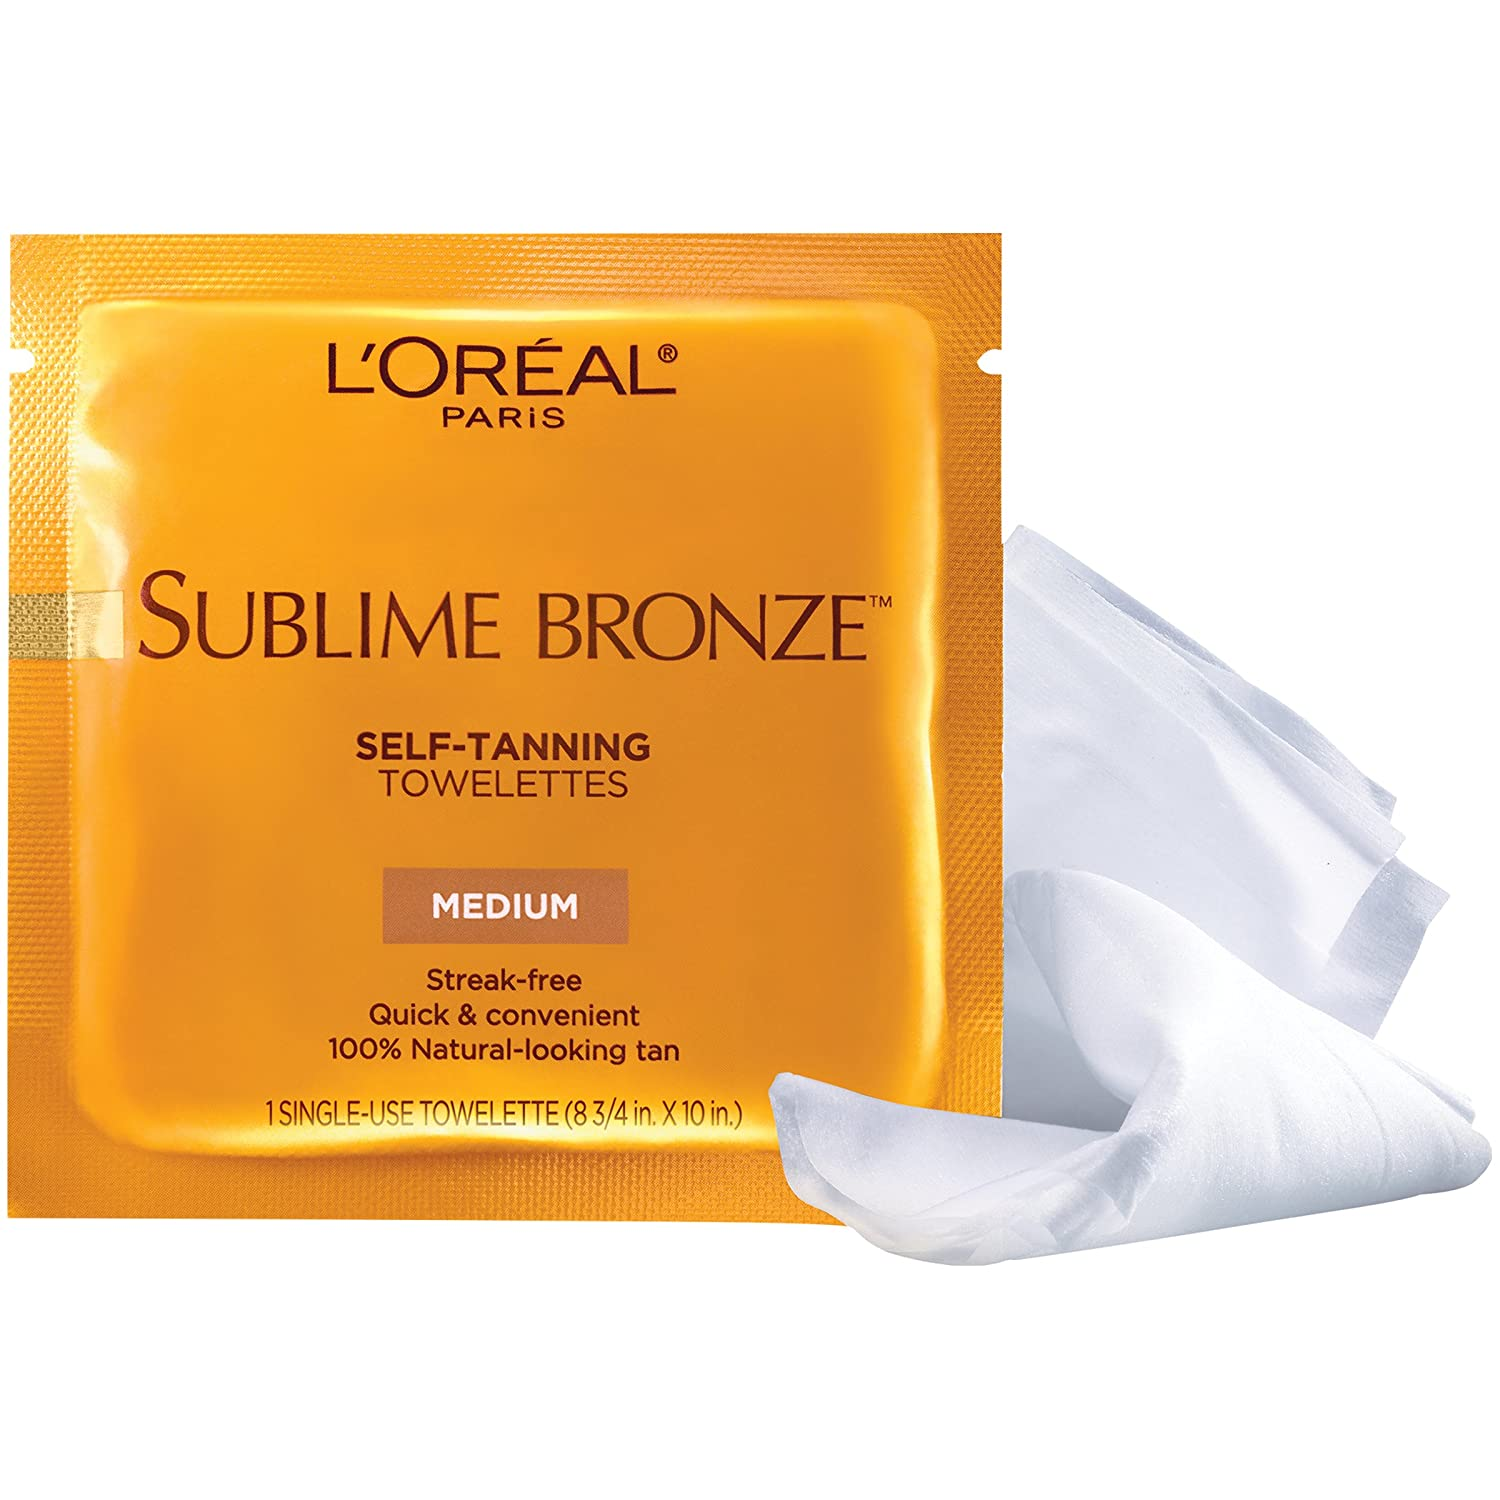 L'Oreal Paris Sublime Bronze Self-Tanning Body Towelettes, 6 Count L' Oreal Paris Skin Care L' OREAL848028